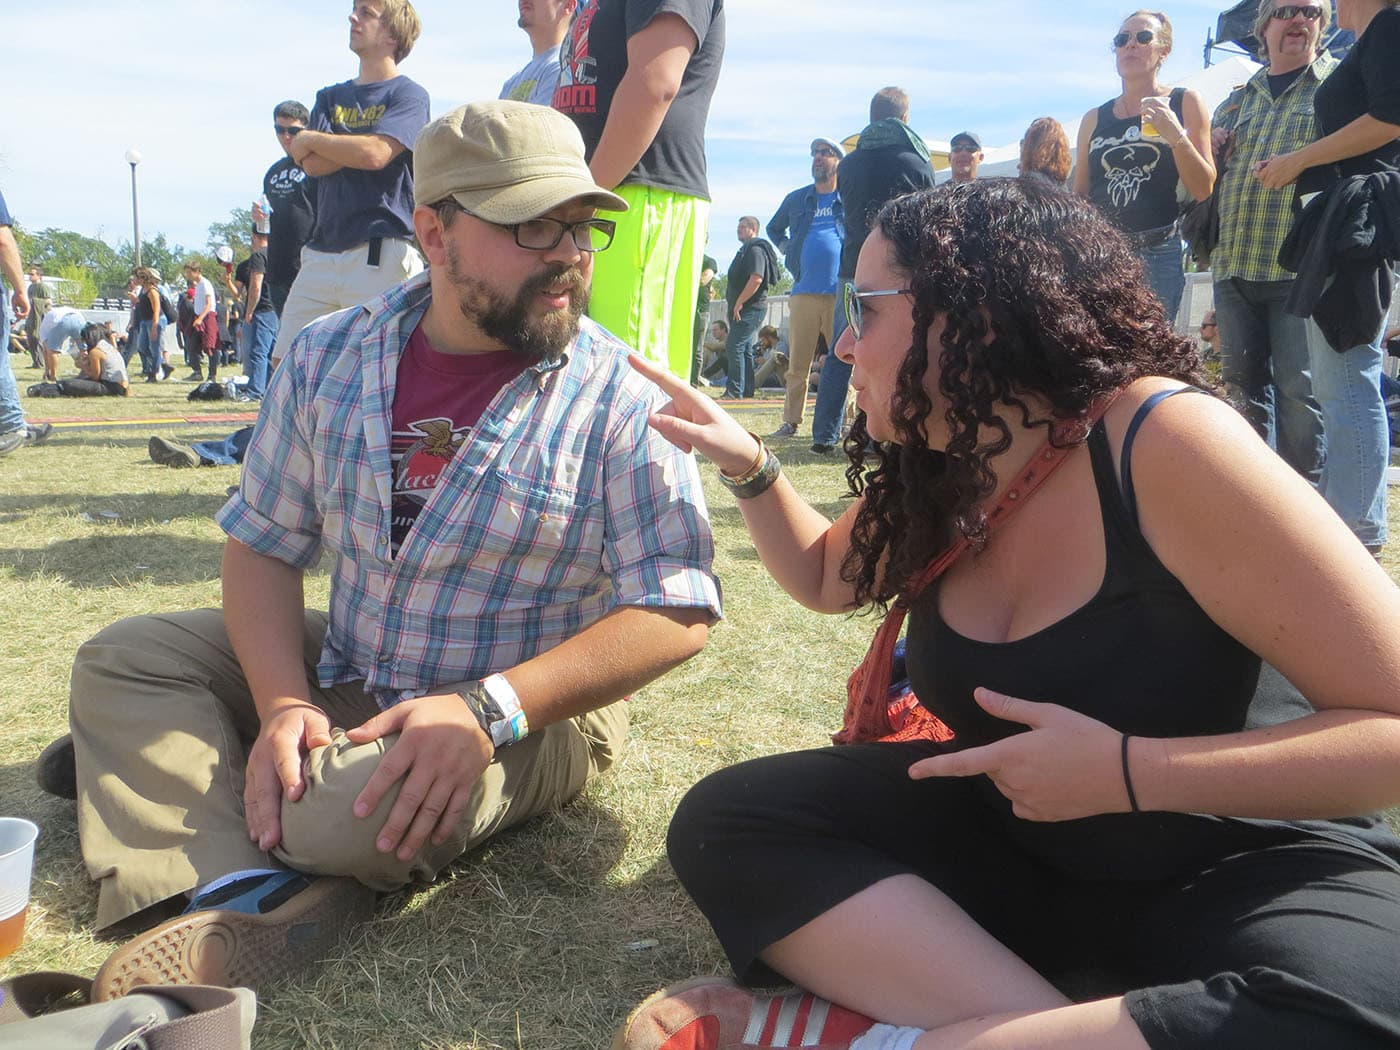 Heather and Jeremy at Riot Fest Chicago 2013